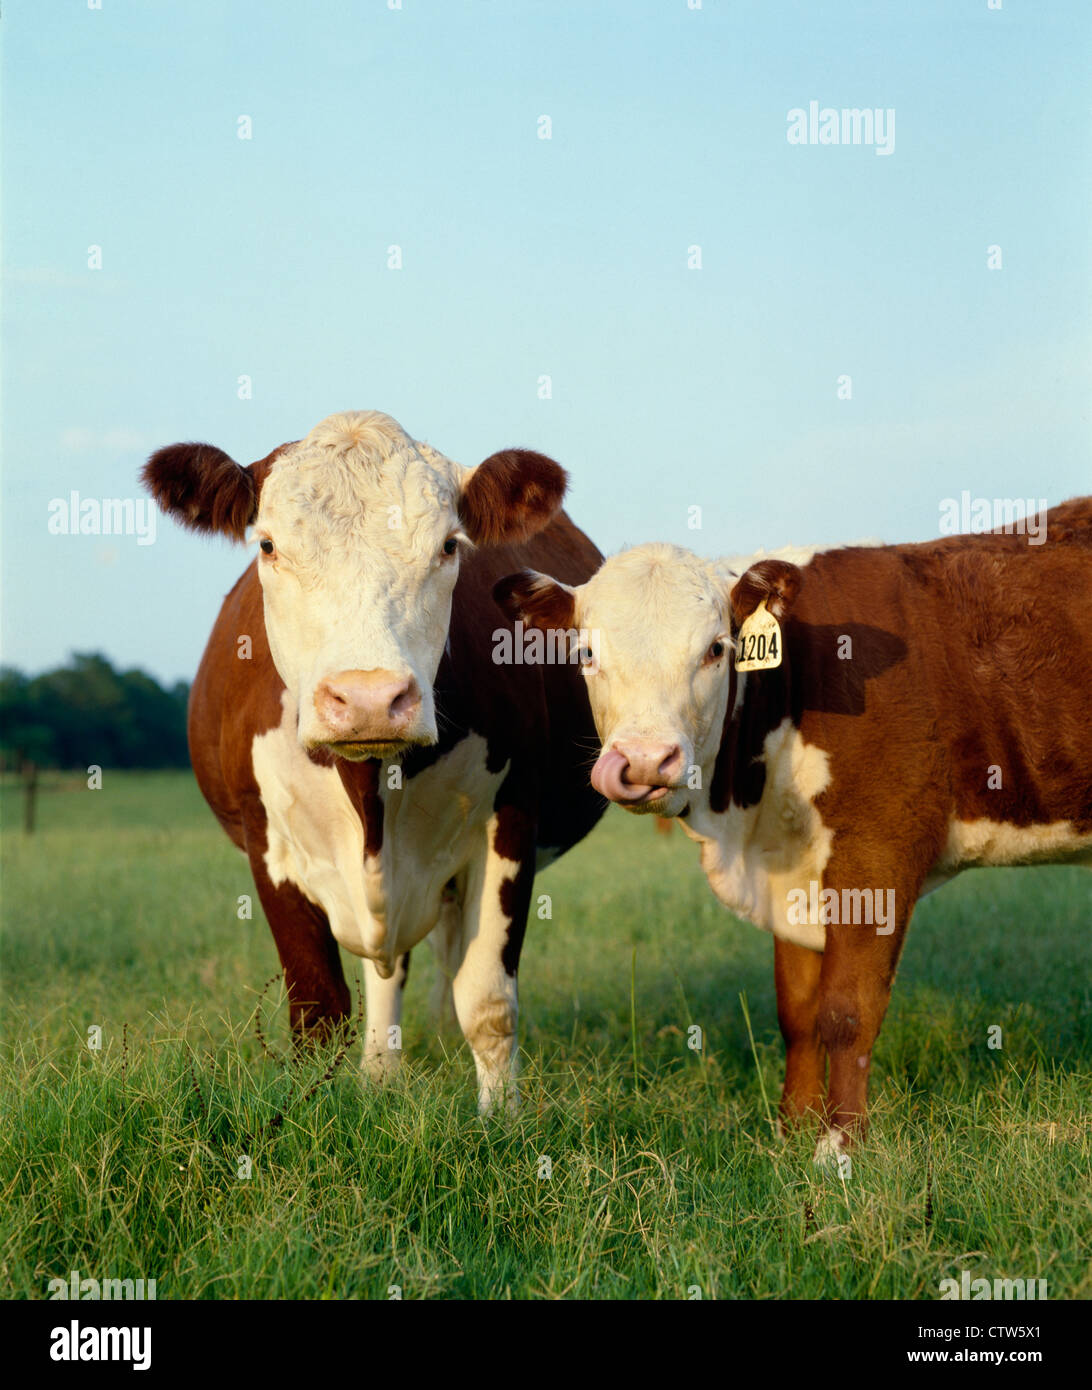 POLLED HEREFORD COW AND BULL CALF Stock Photo: 49725929 - Alamy